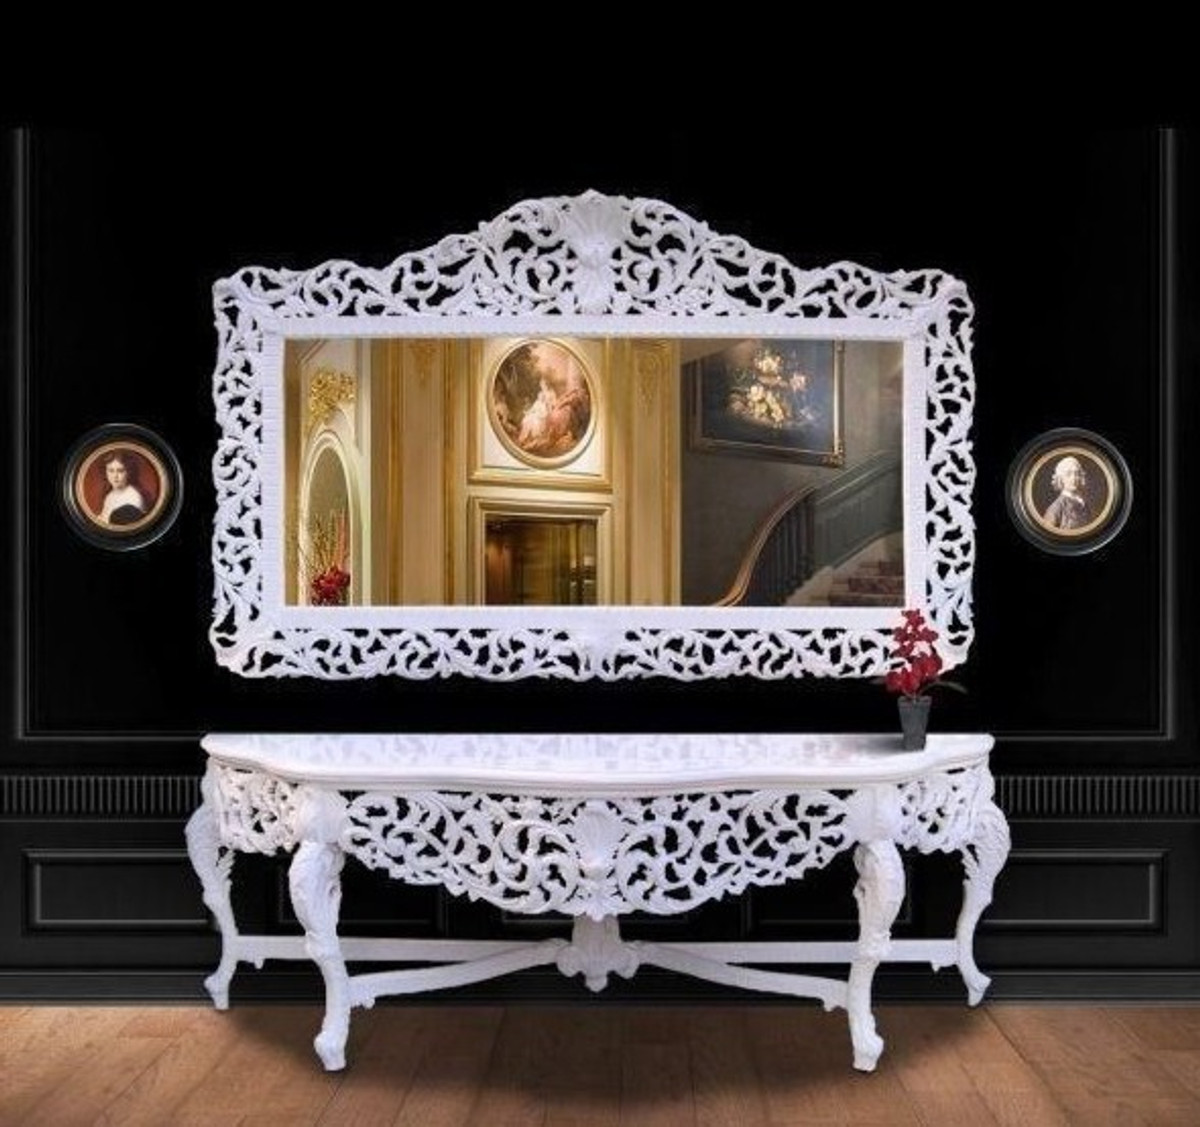 riesige casa padrino barock spiegelkonsole wei mit wei er marmorplatte luxus wohnzimmer m bel. Black Bedroom Furniture Sets. Home Design Ideas